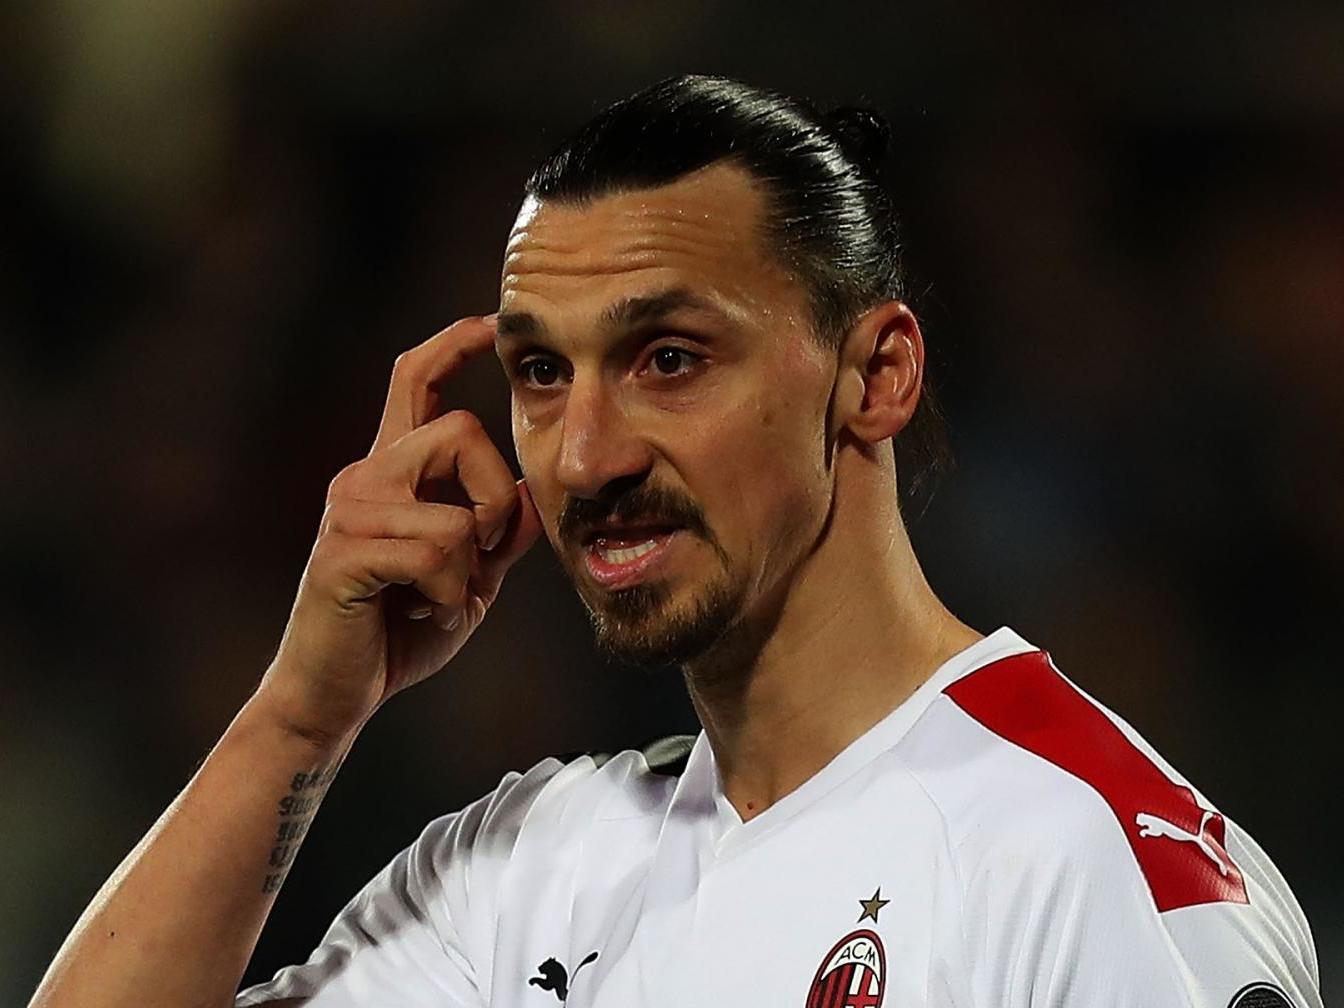 Ibrahimovic suffers calf injury ahead of Serie A restart